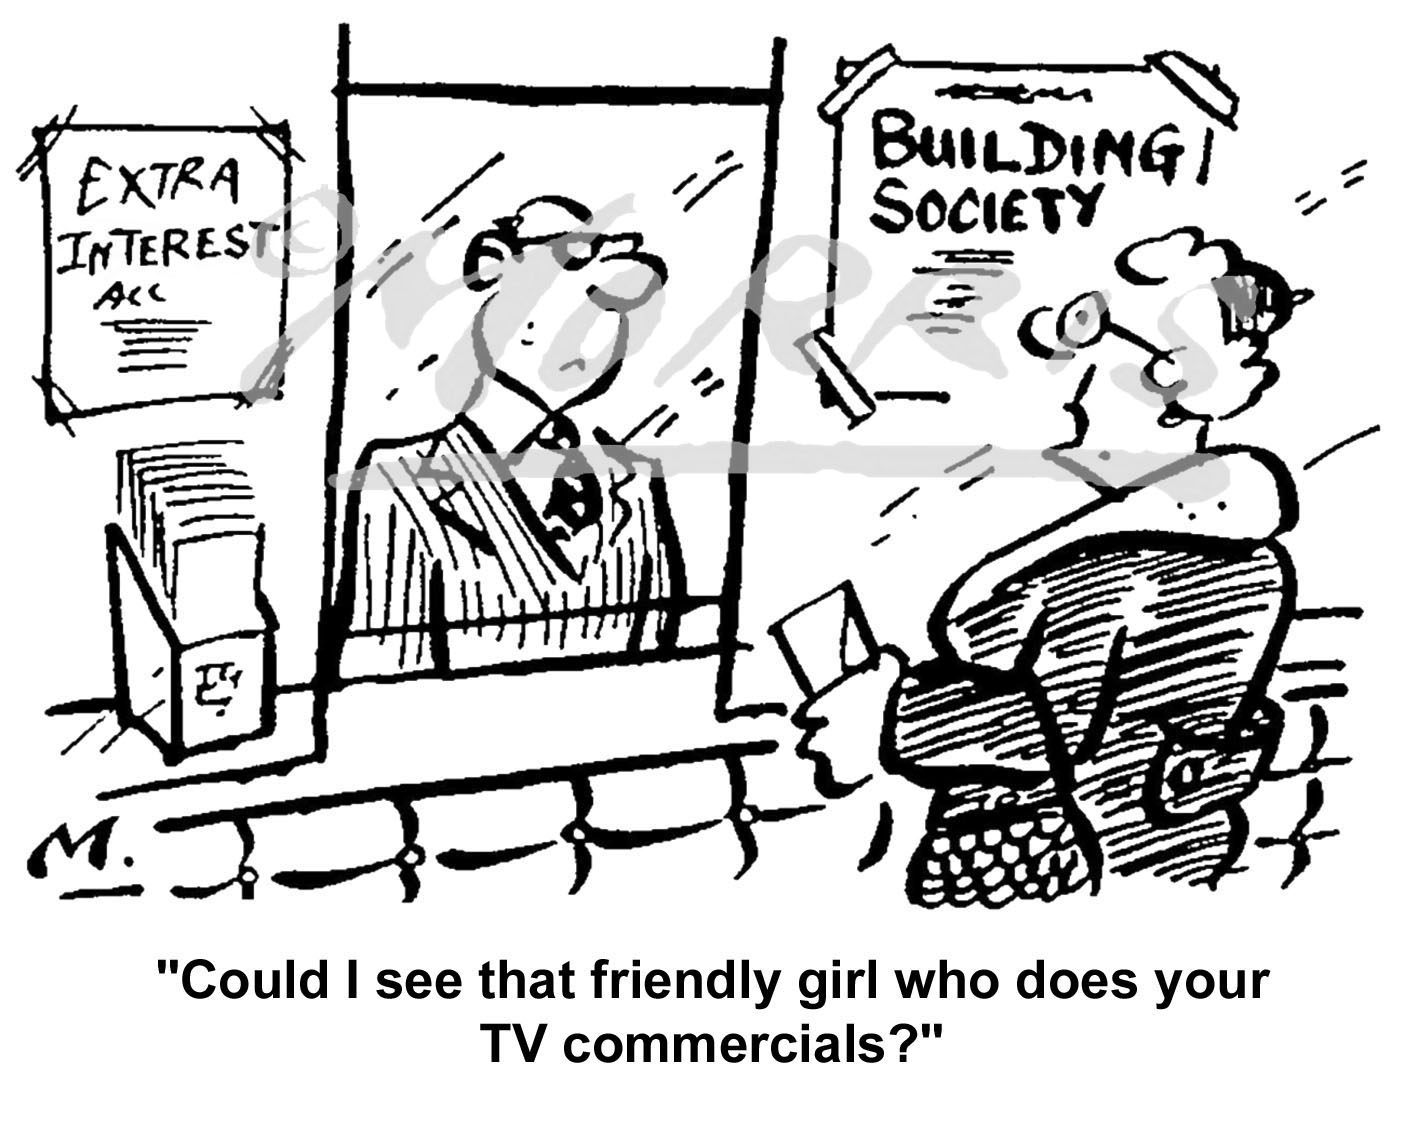 Building Society mortgage cartoon Ref: 0311bw